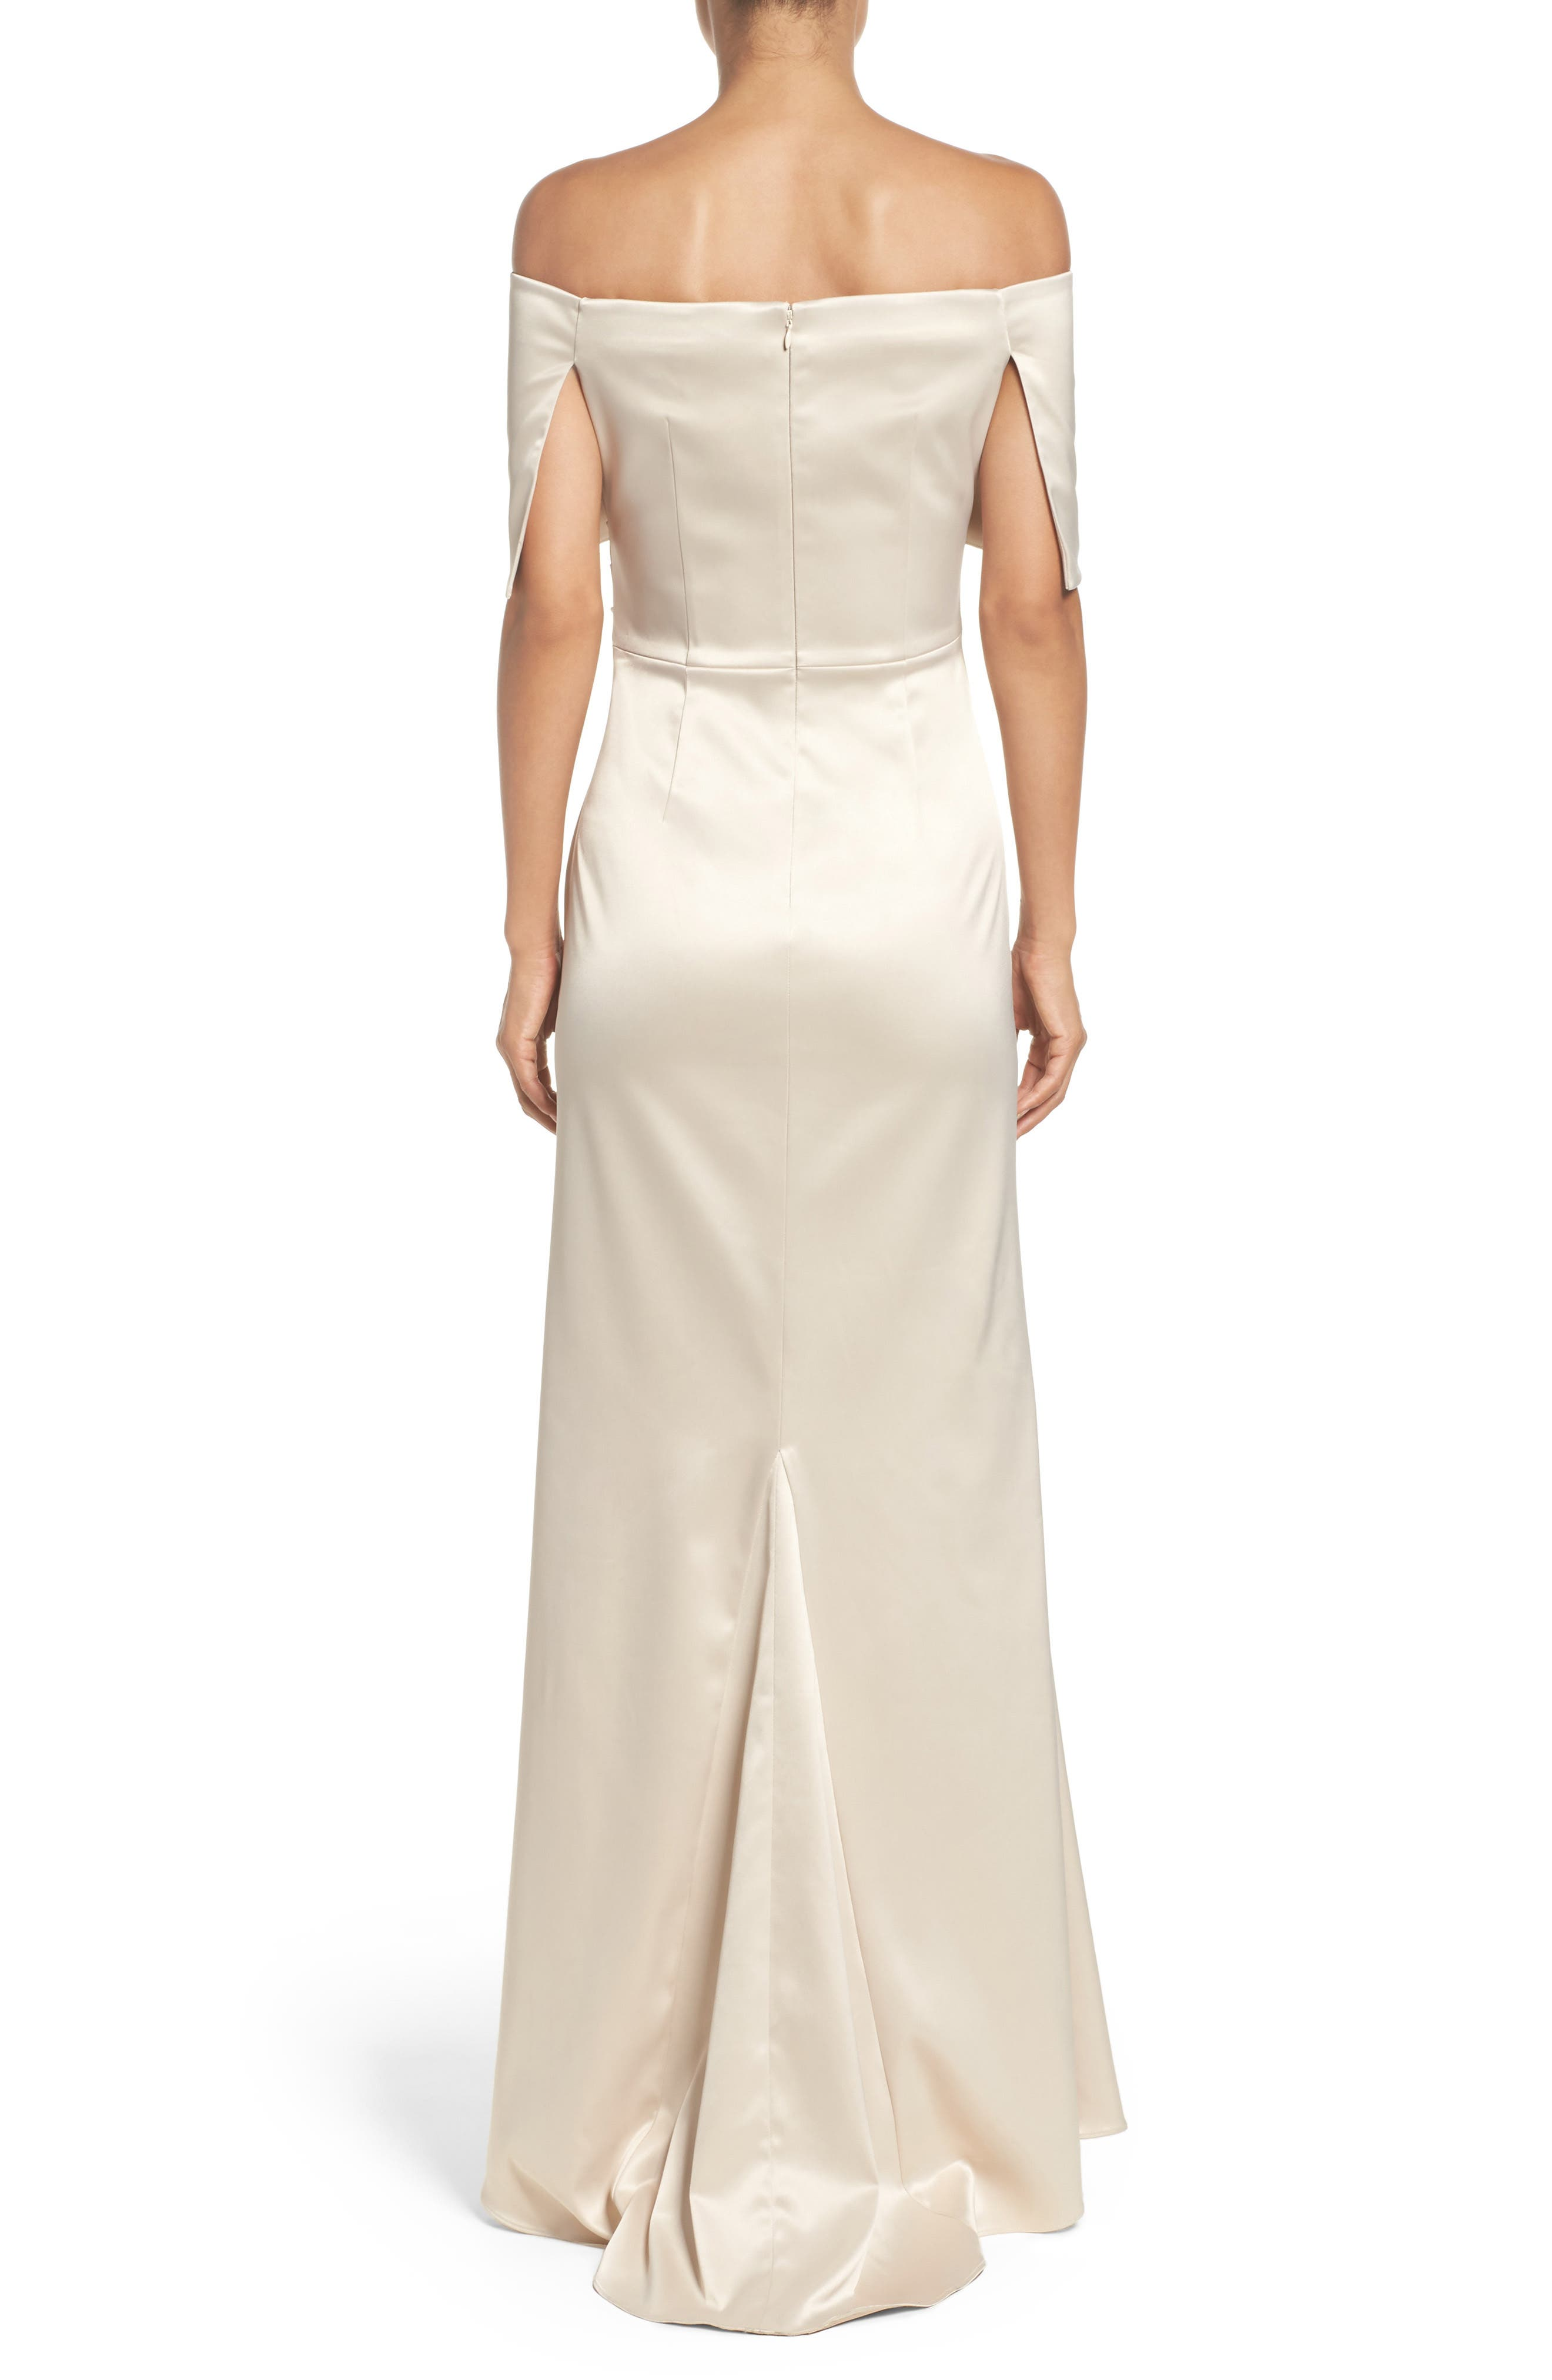 VINCE CAMUTO,                             Off the Shoulder Gown,                             Alternate thumbnail 2, color,                             CHAMPAGNE